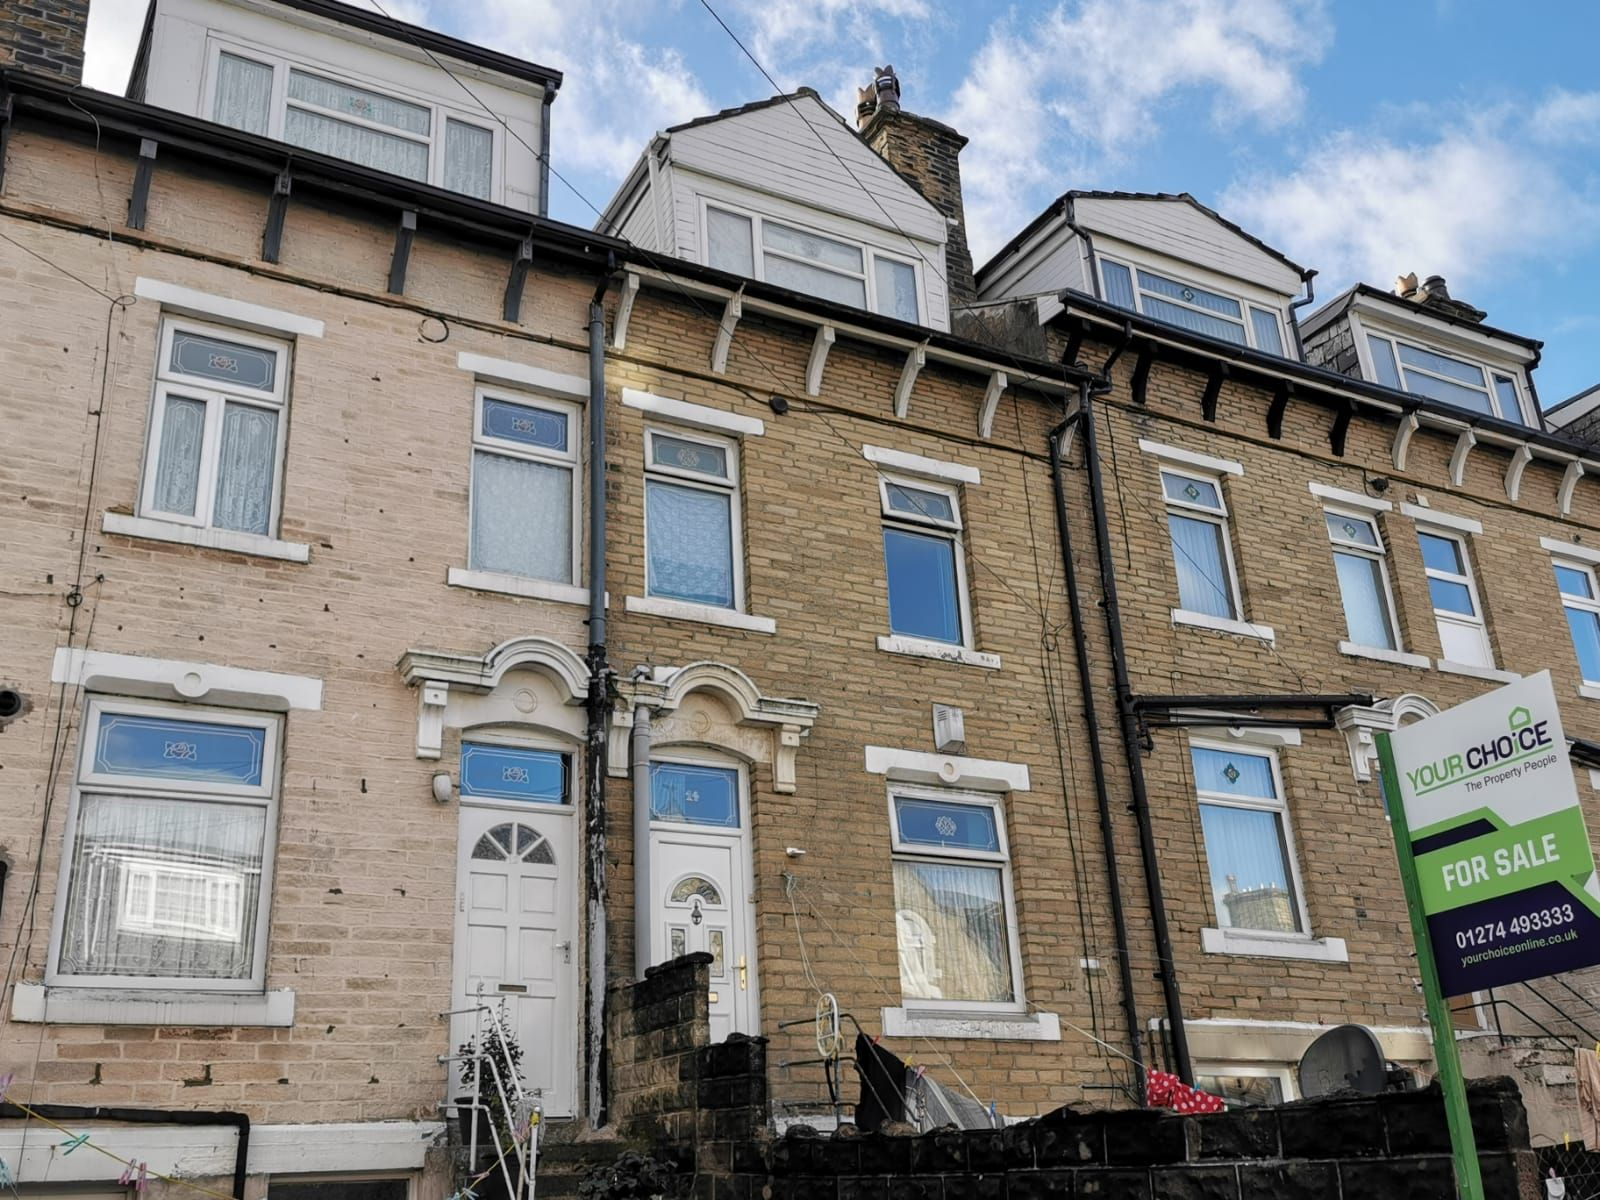 2 bedroom mid terraced house SSTC in Bradford - Photograph 1.